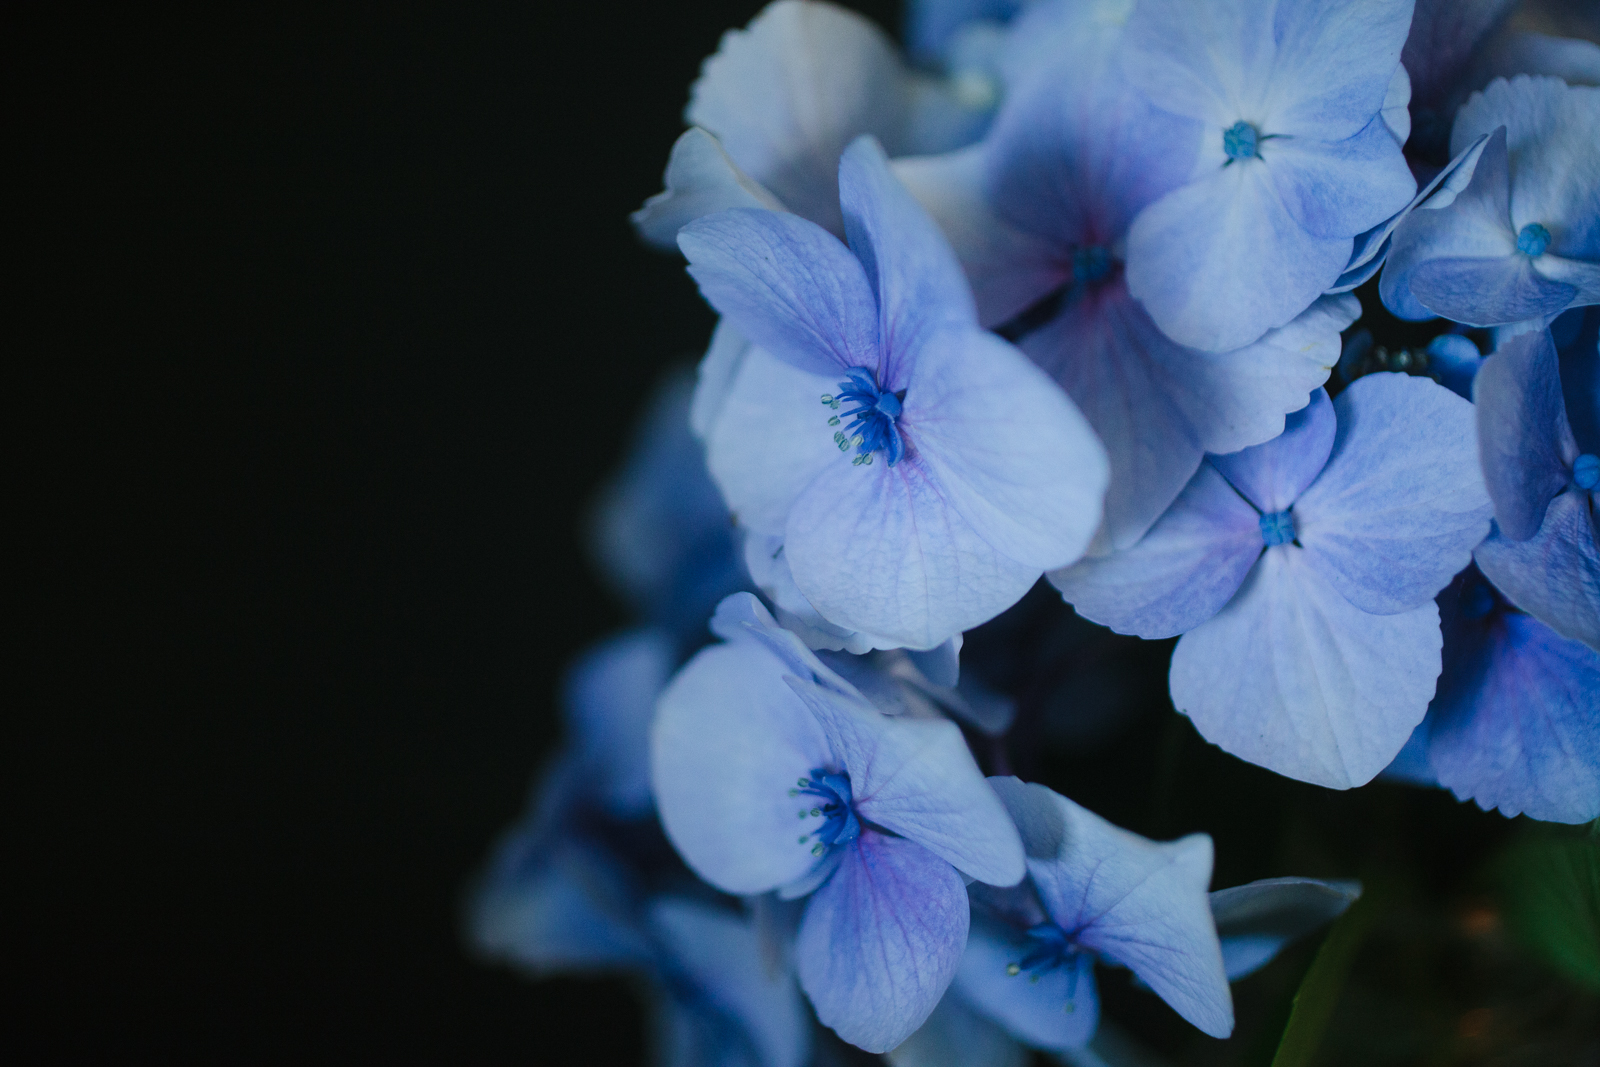 close up picture of a blue flower by Meghan McMackin